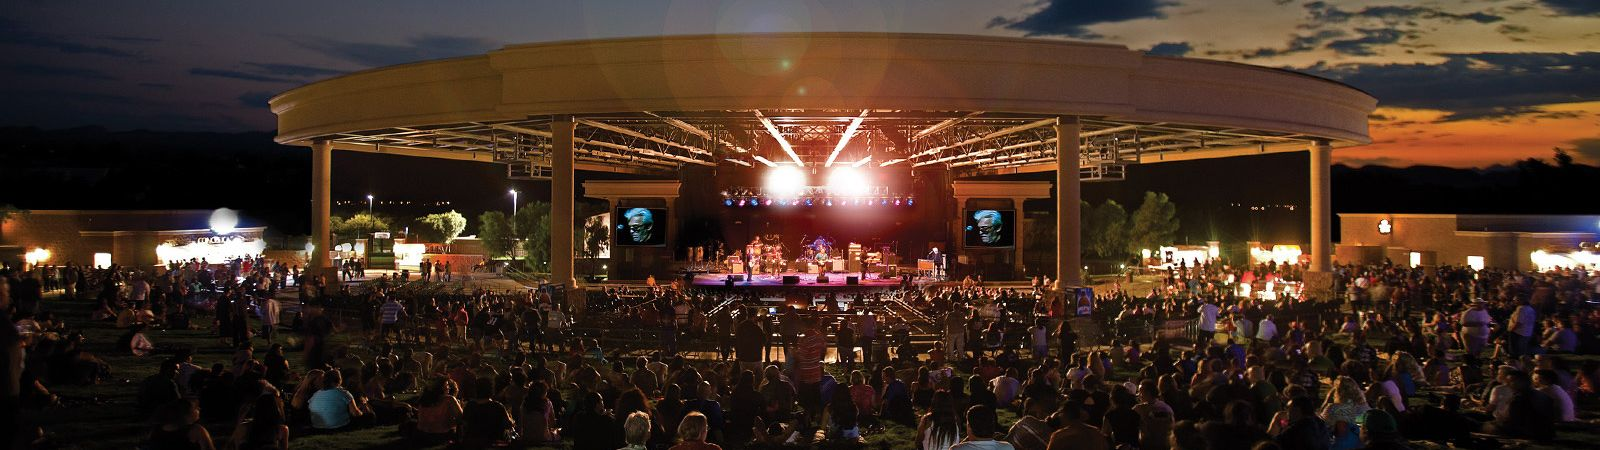 Concerts at casino del sol craps table layout for sale